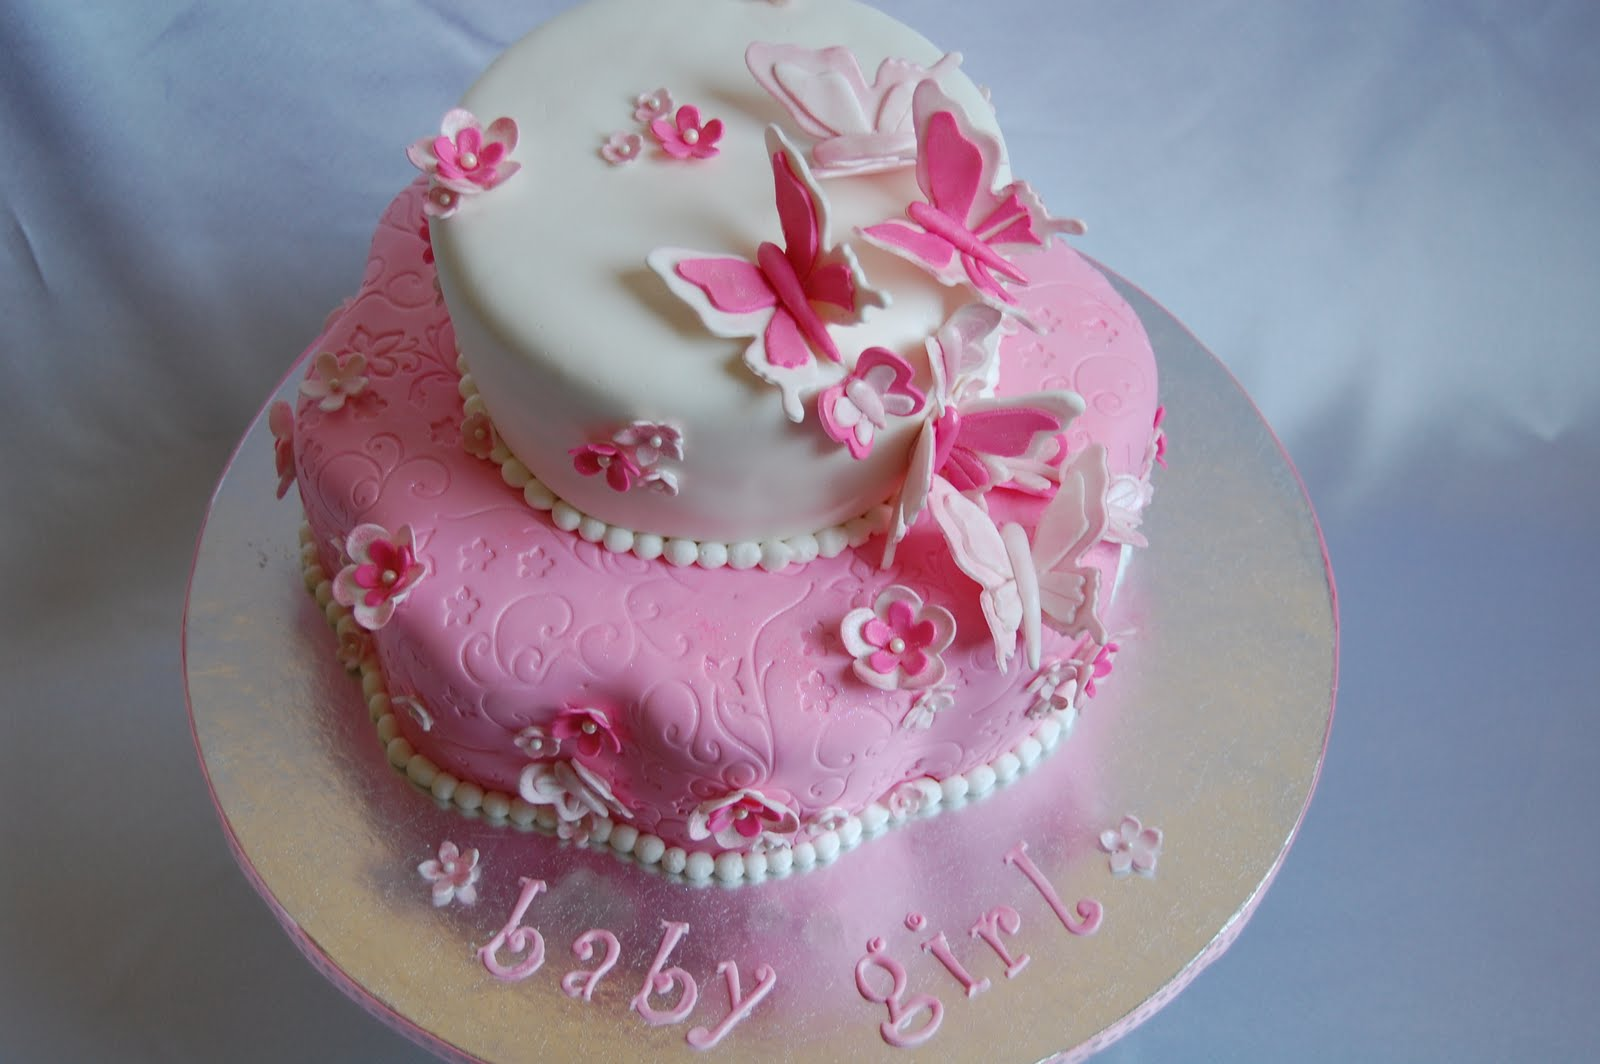 cakes by jen pink and white butterflies and flowers baby shower cake